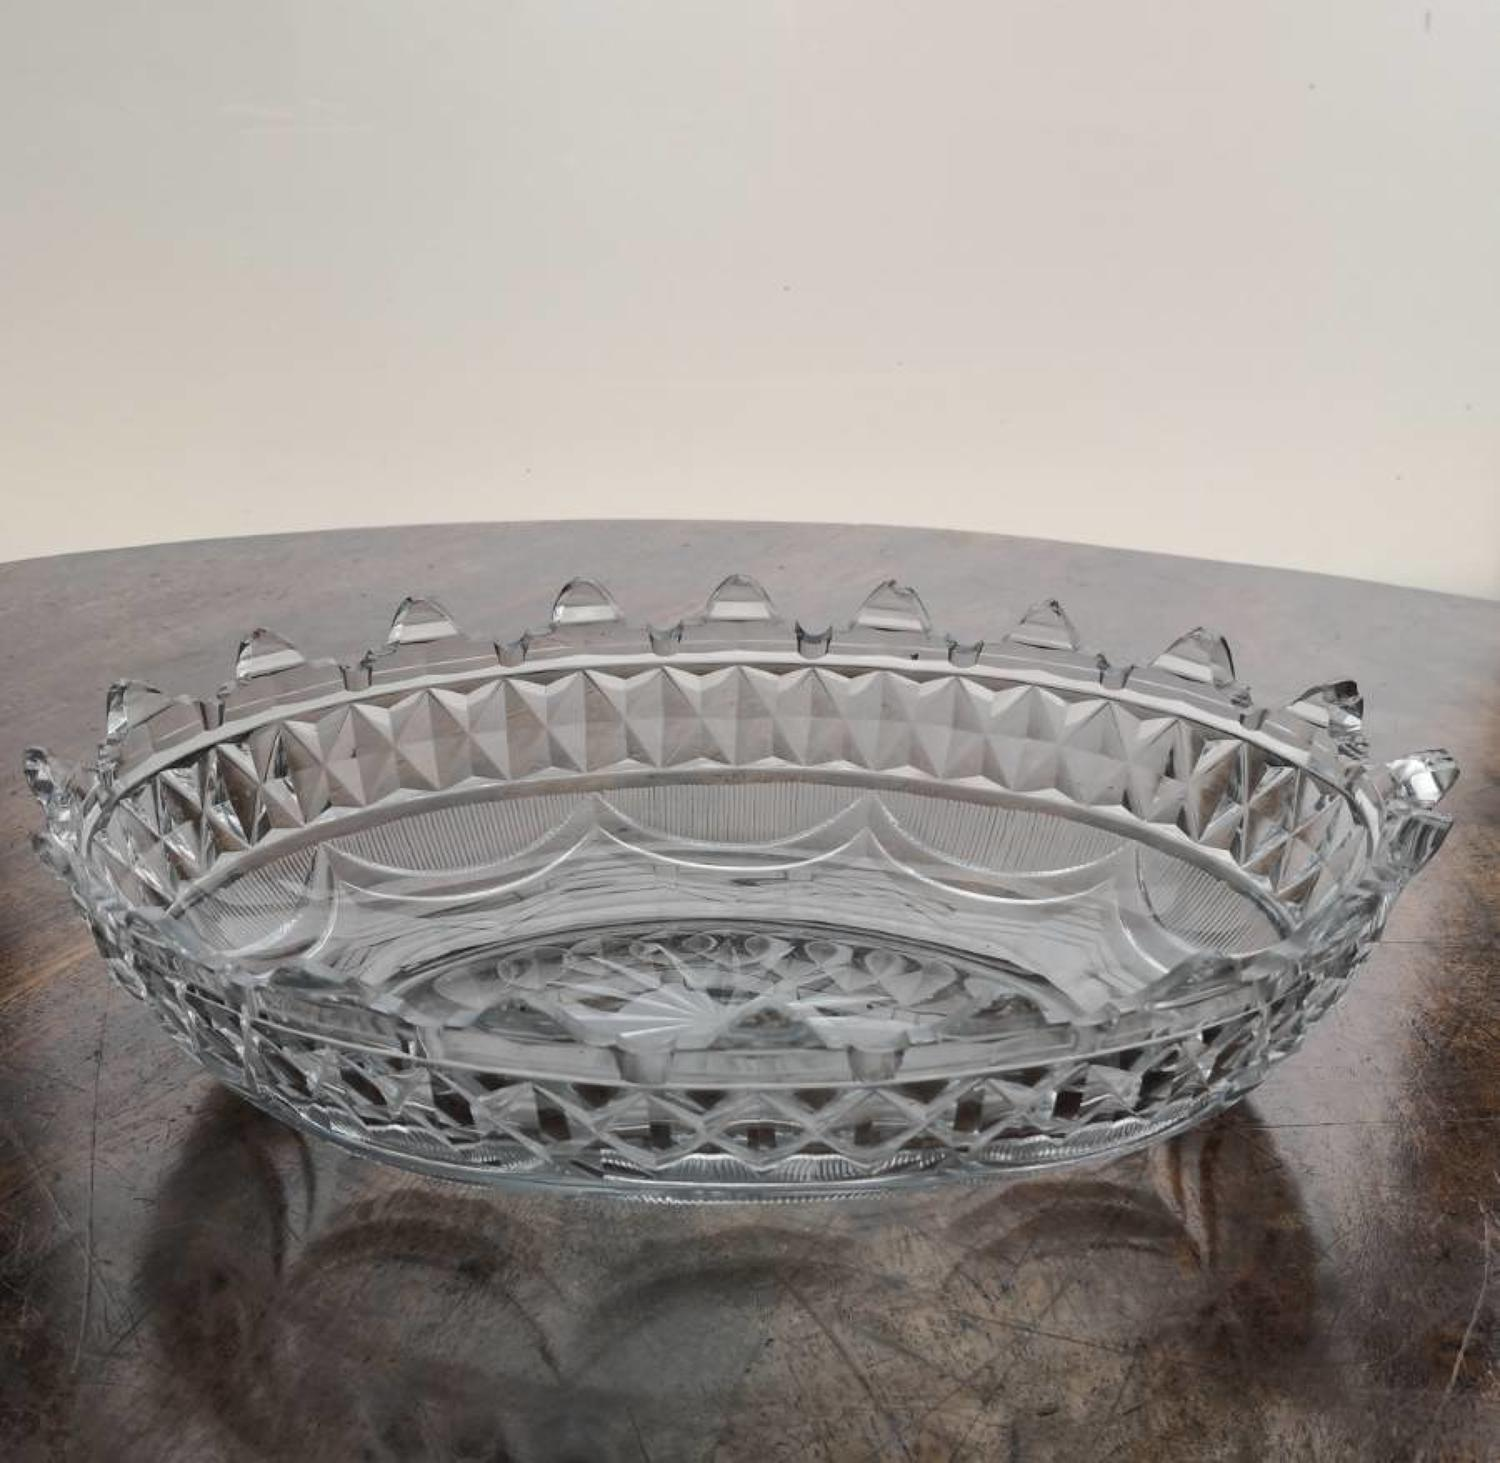 Irish, Regency glass centrepiece